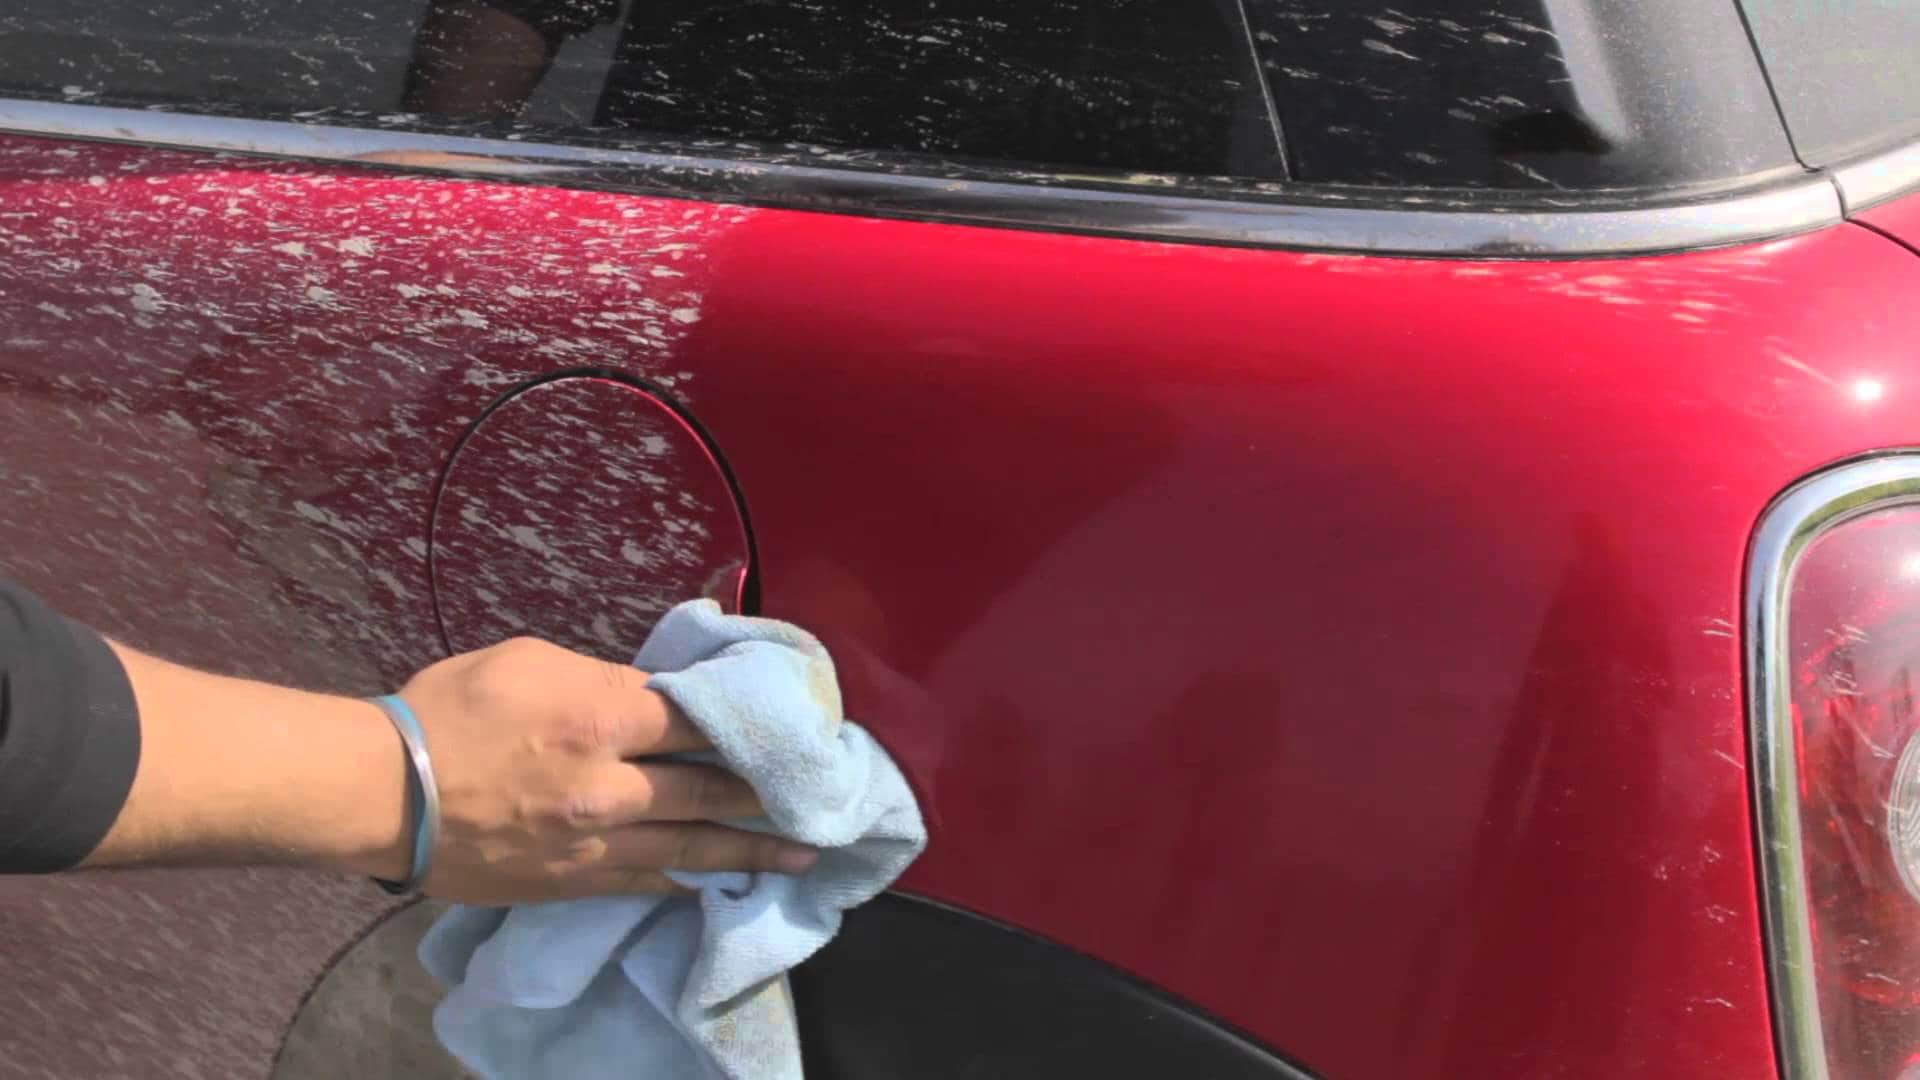 Dayton toyota 10 diy car cleaning tips interior and exterior How to keep your car exterior clean